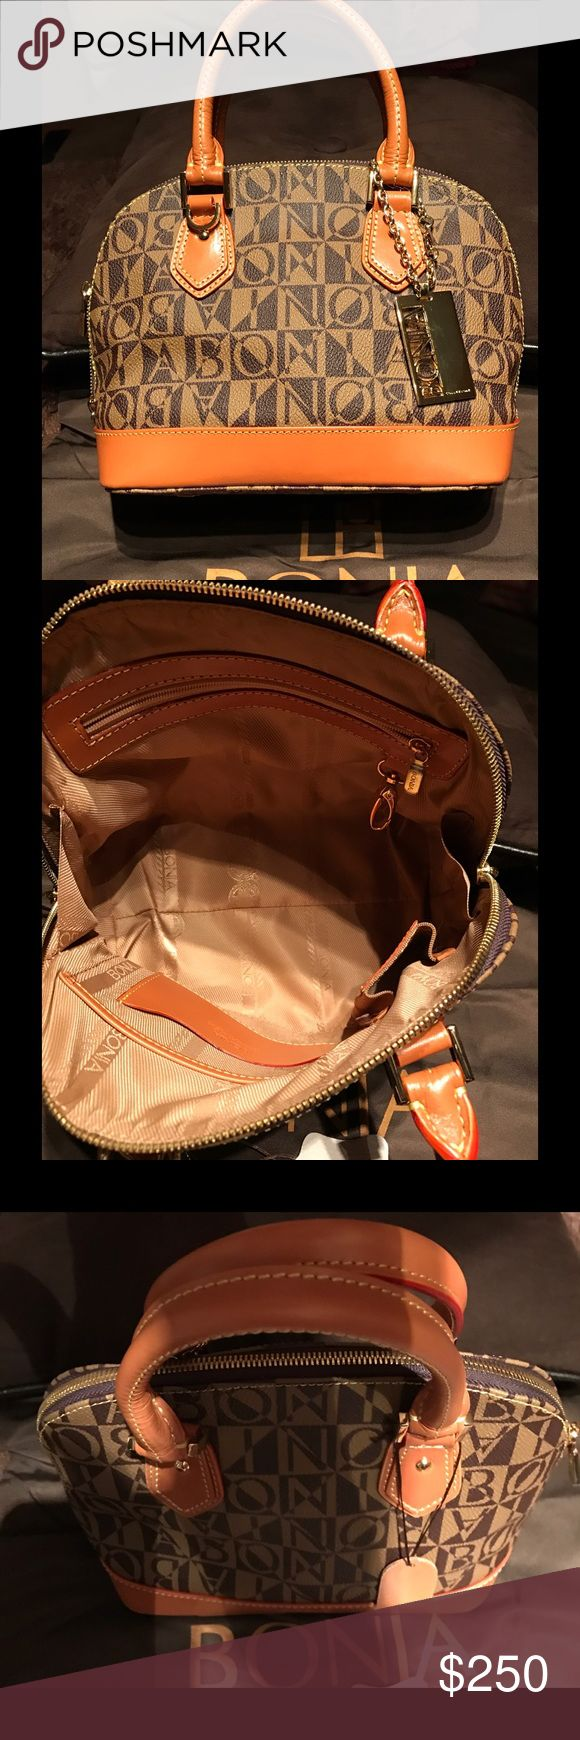 Bonia purse Brand new never used have tags booklet and dust bag perfect little purse so cute and handy purchased in Singapore and never been used bonia Bags Satchels